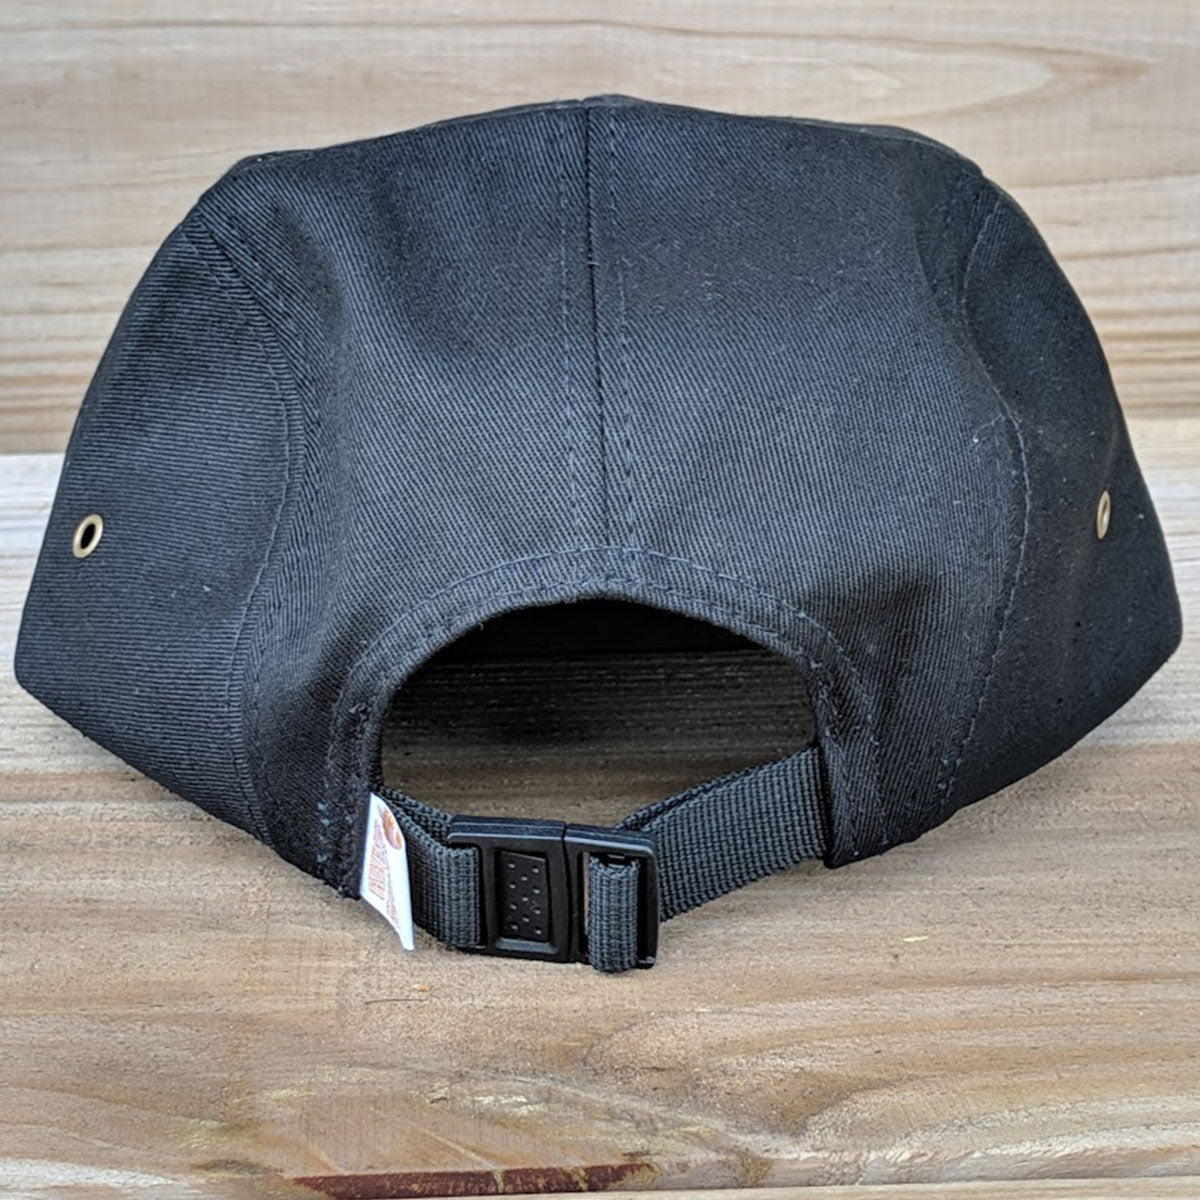 Back View of Black Hat with Cork Bill